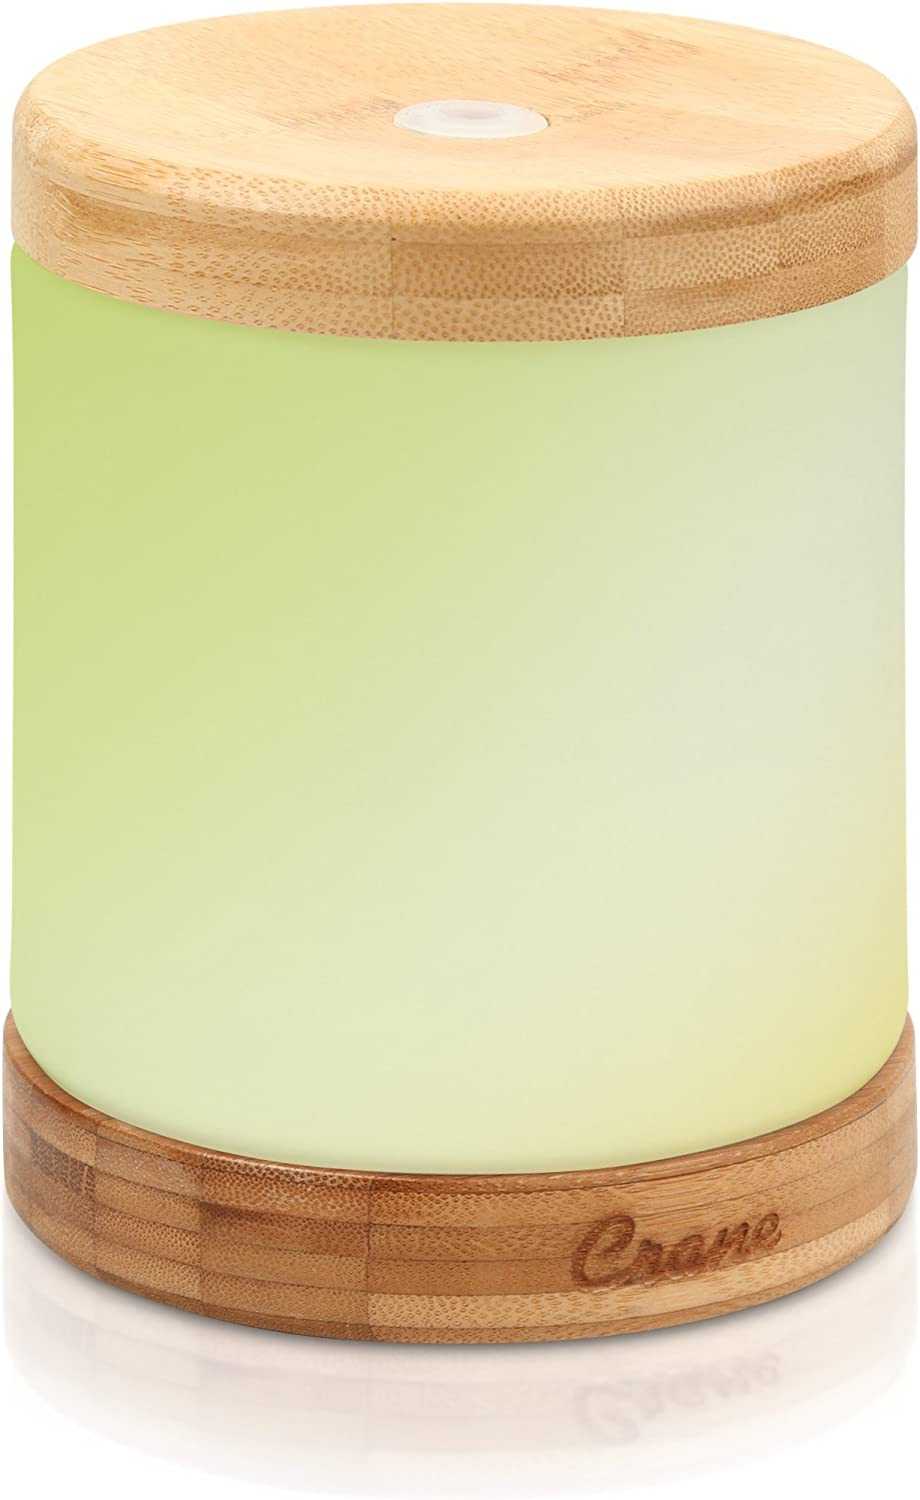 Crane Essential Oil Diffuser Aroma Essential Oil Cool Mist Humidifier with Adjustable Mist and Waterless Auto Shut-Off, Bamboo